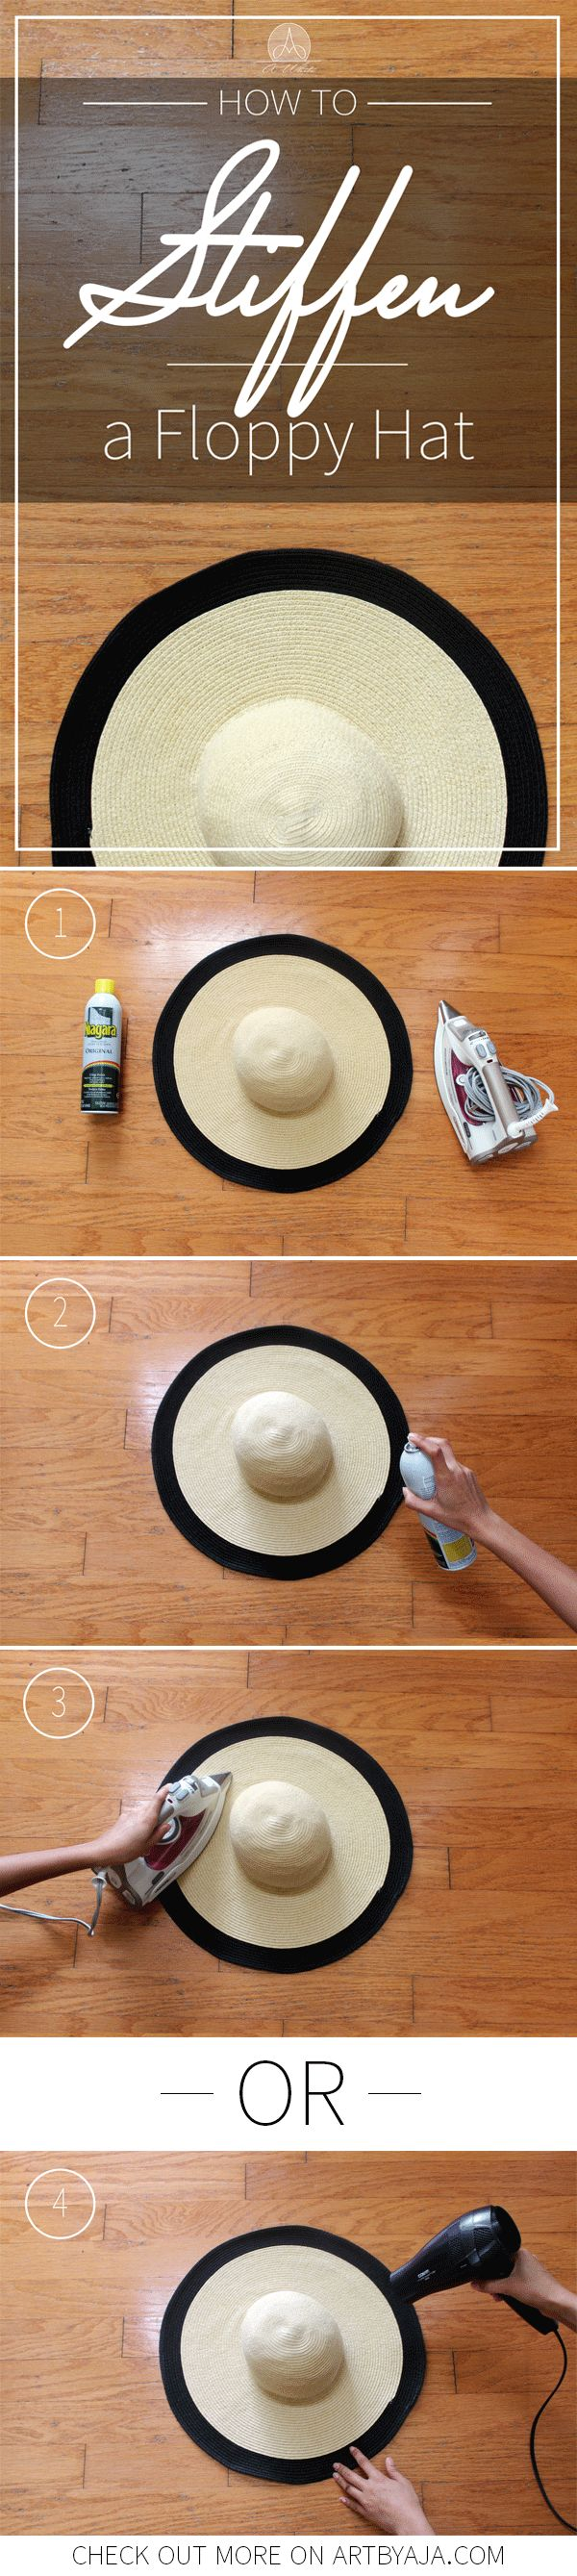 This technique works wonders! I've done this to multiple hats with great success. If you've ever had an accident where your hat was crushed or wrinkled (Like me and mine ) this is for you. Learn how to stiffen all of your hats for good!